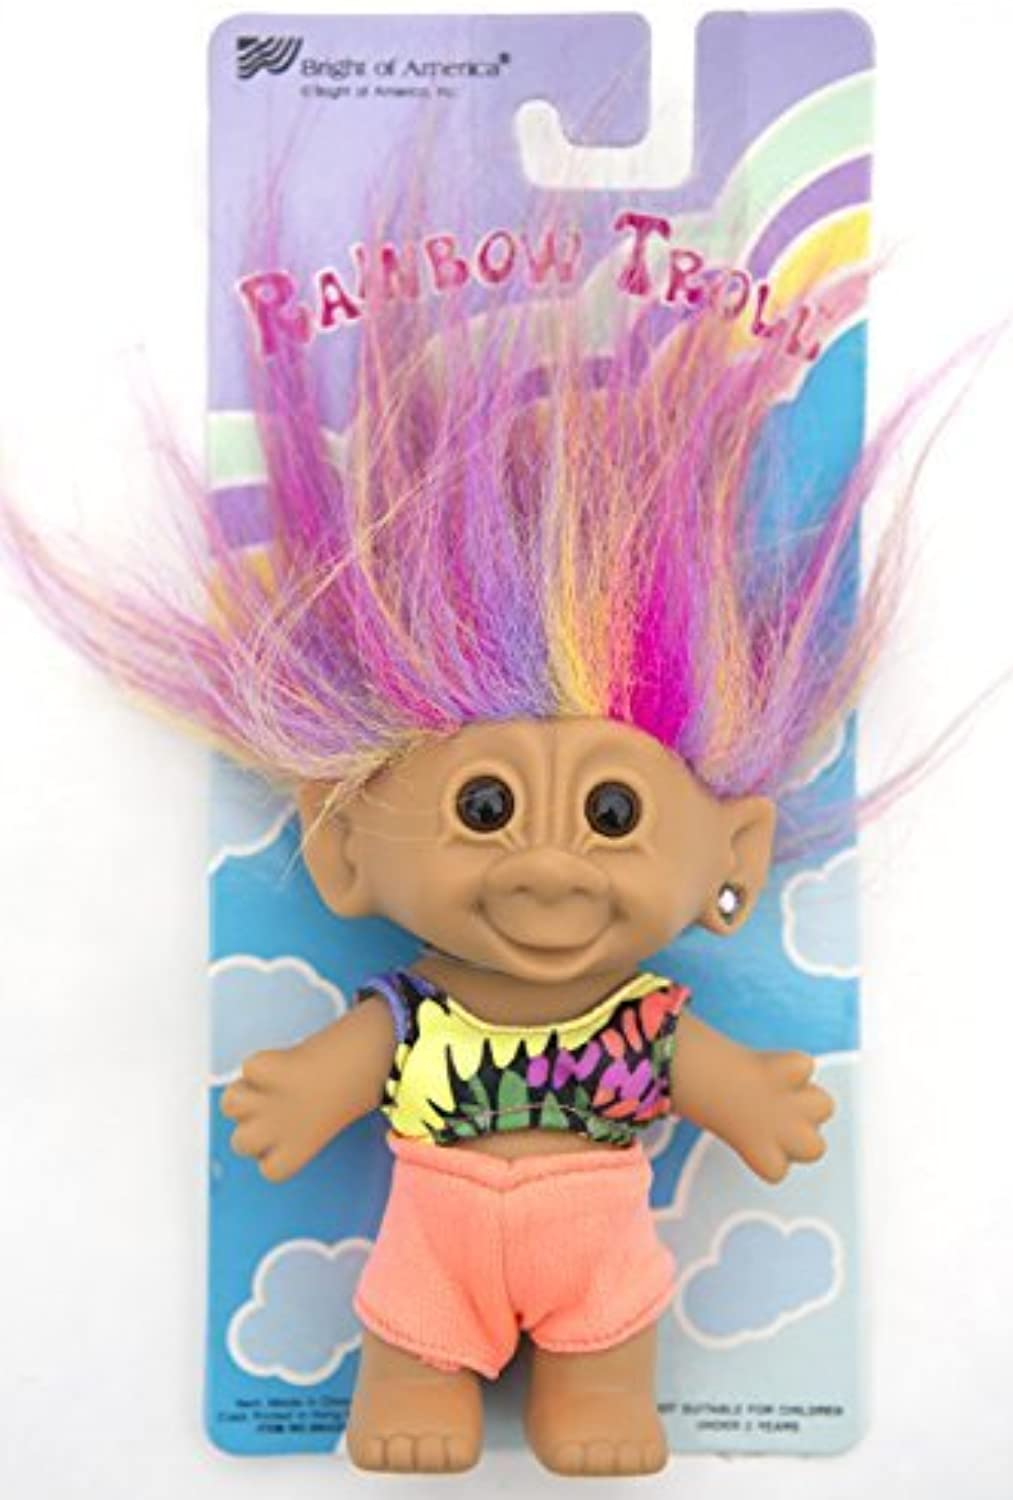 My Lucky Rainbow 6  Troll Doll - Summer Outfit by Bright of America